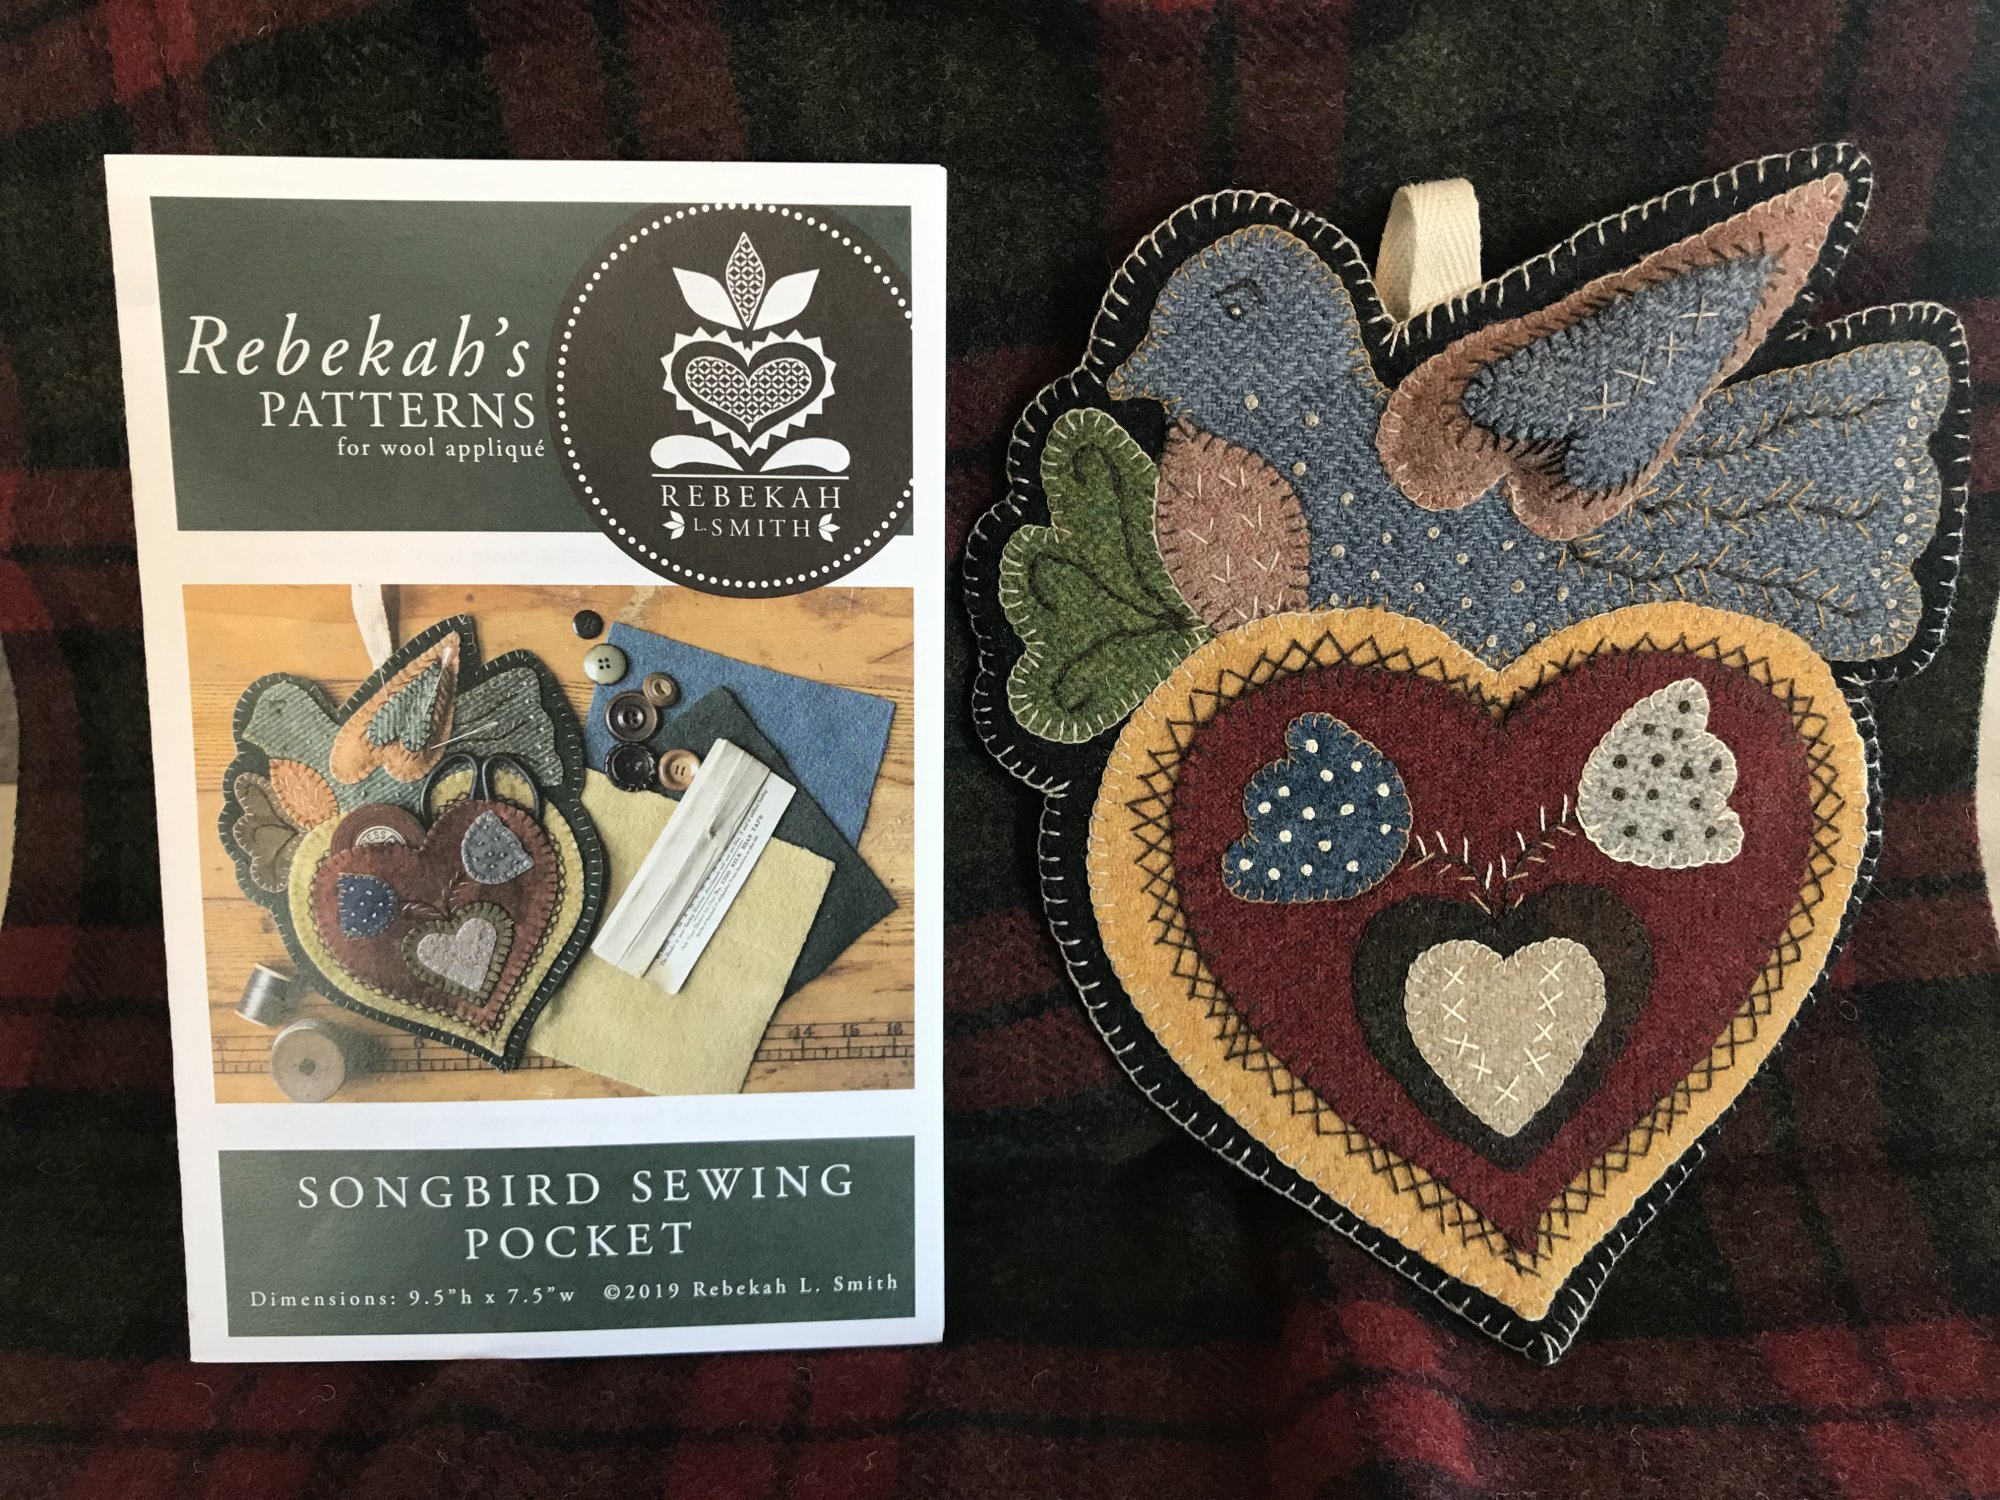 Songbird Sewing Pocket Wool Kit & Pattern